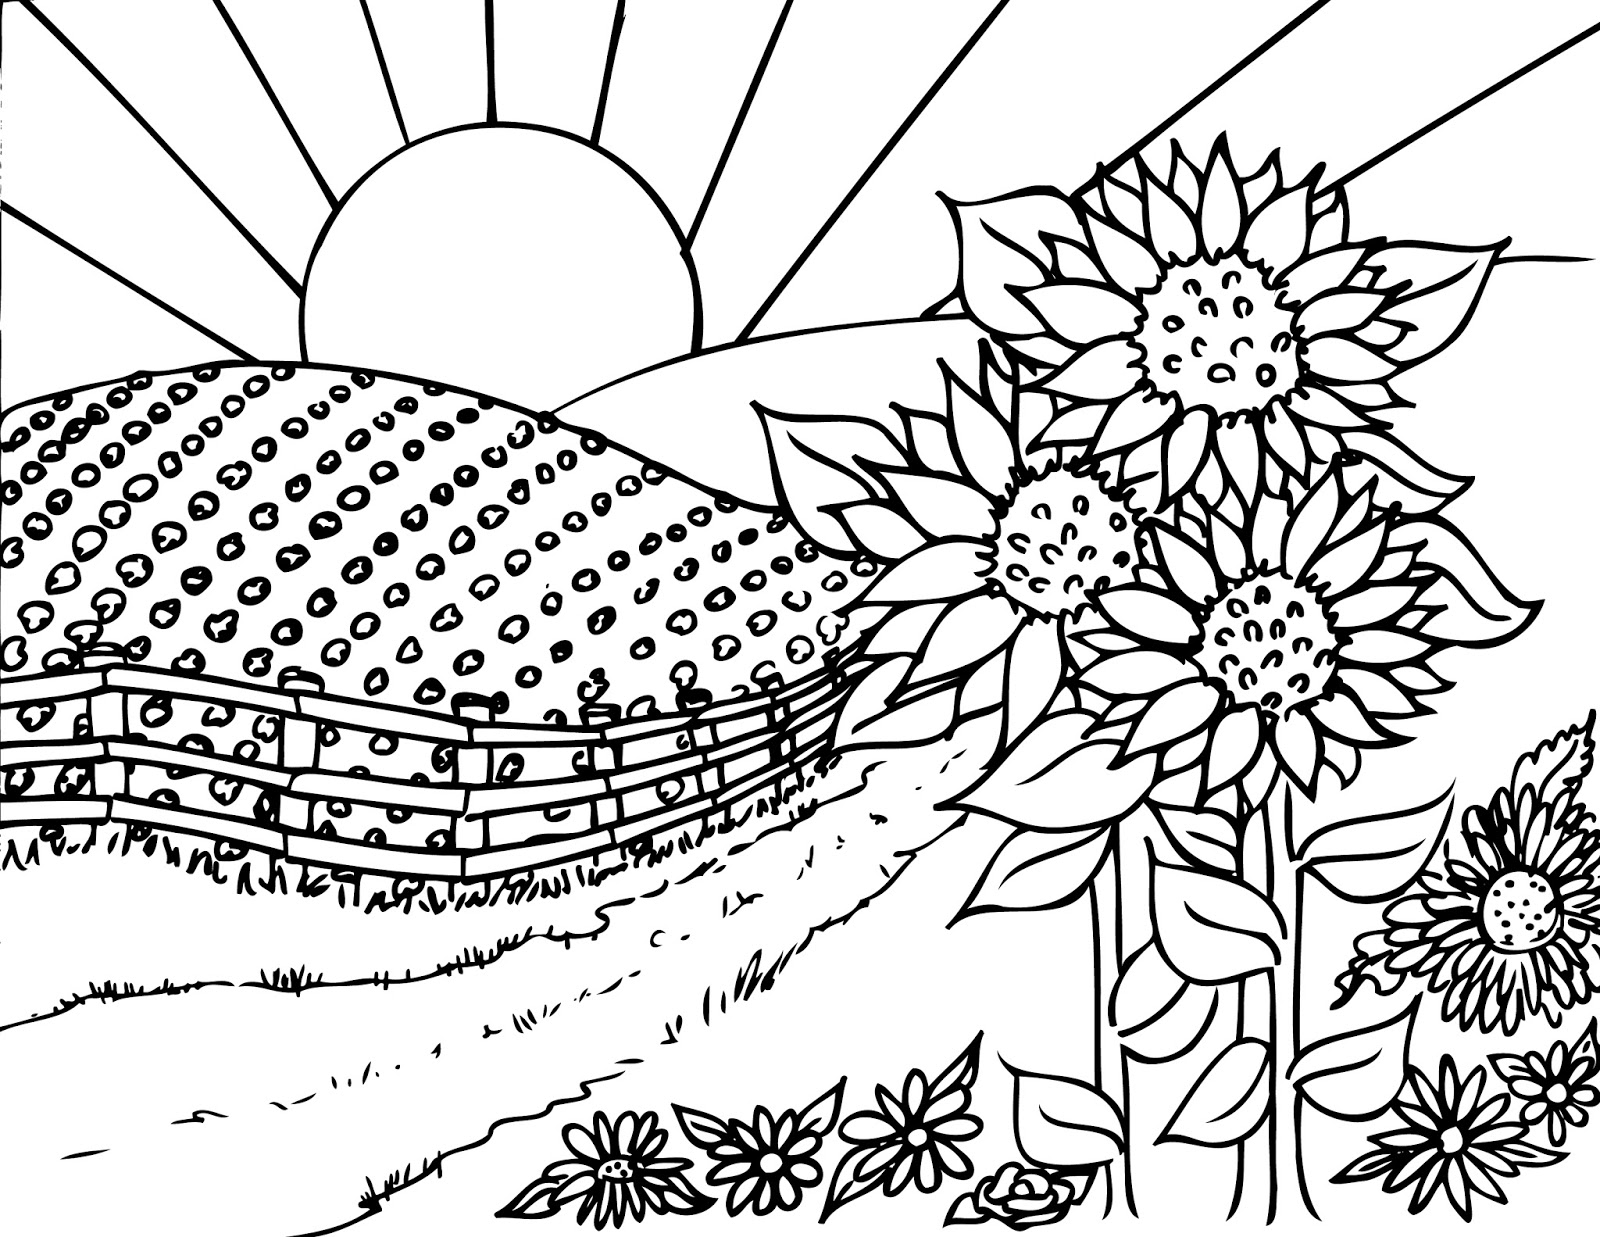 Birdhouse coloring sheet - Whimsical Birdhouse Coloring Page